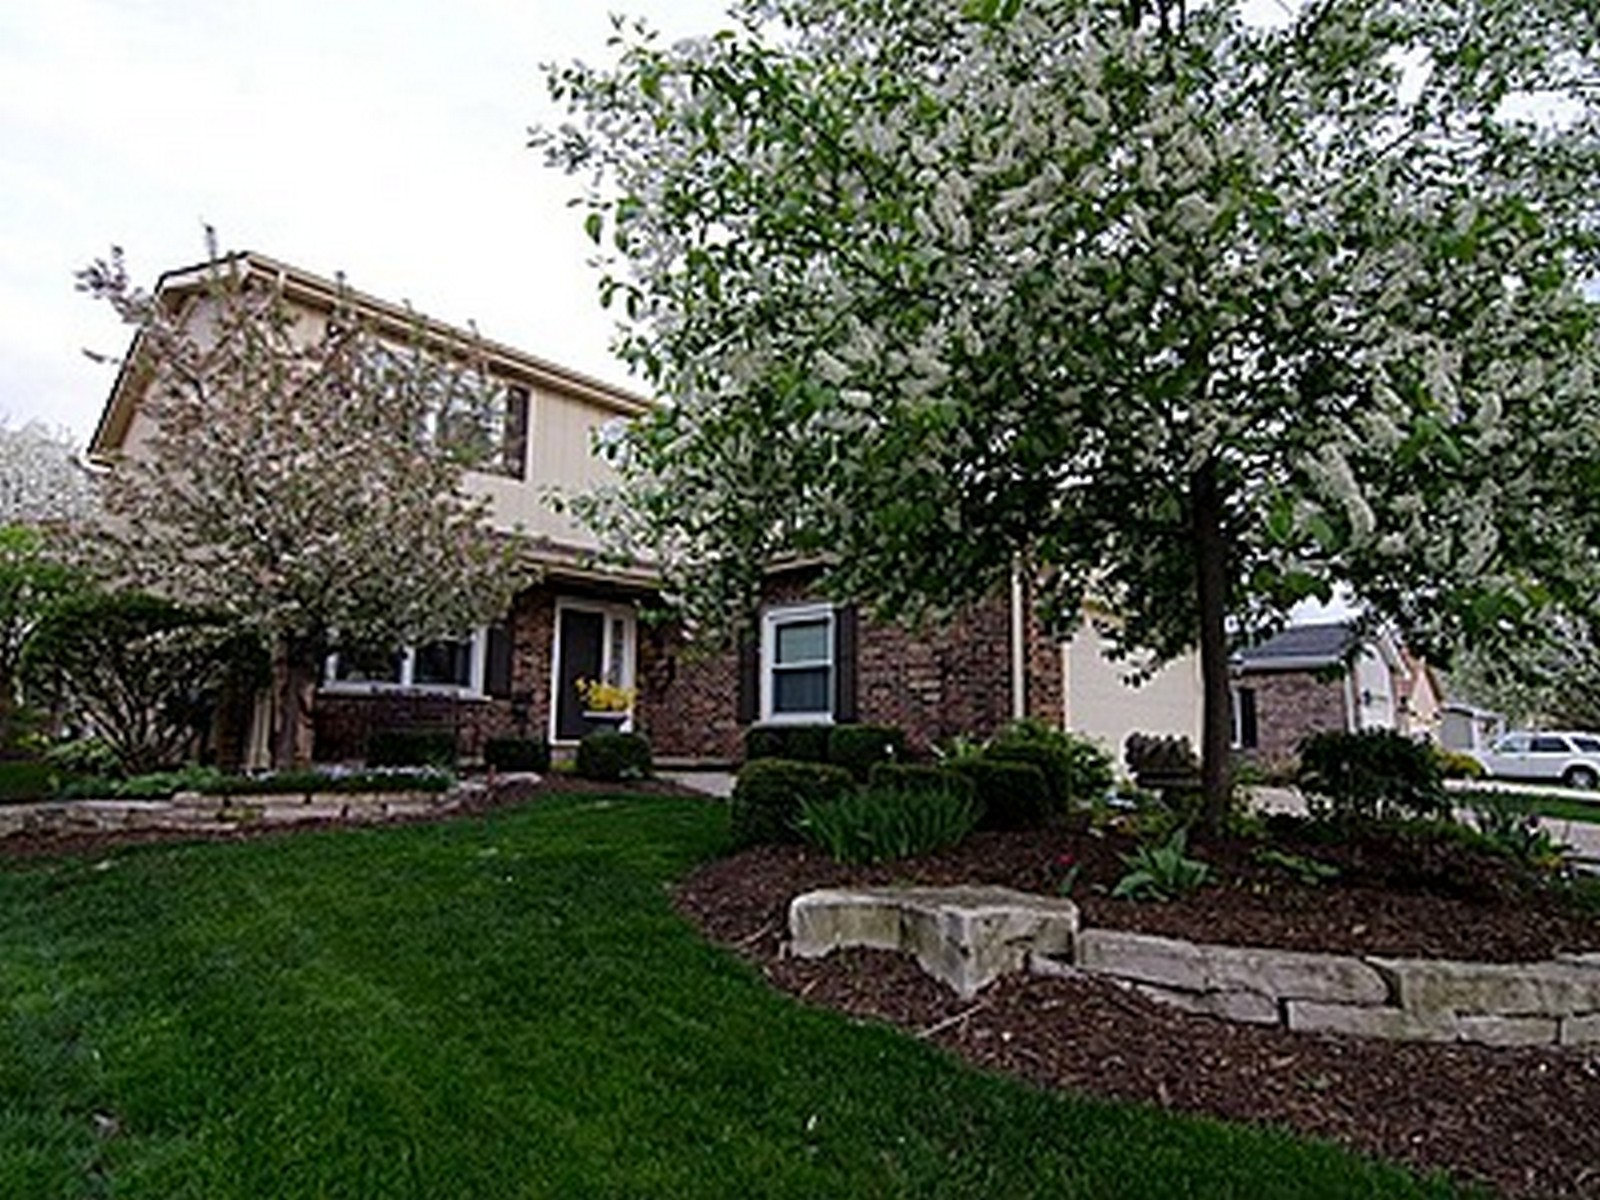 Real Estate Photography - 820 Morningside Dr, Naperville, IL, 60563 - Front View in Spring